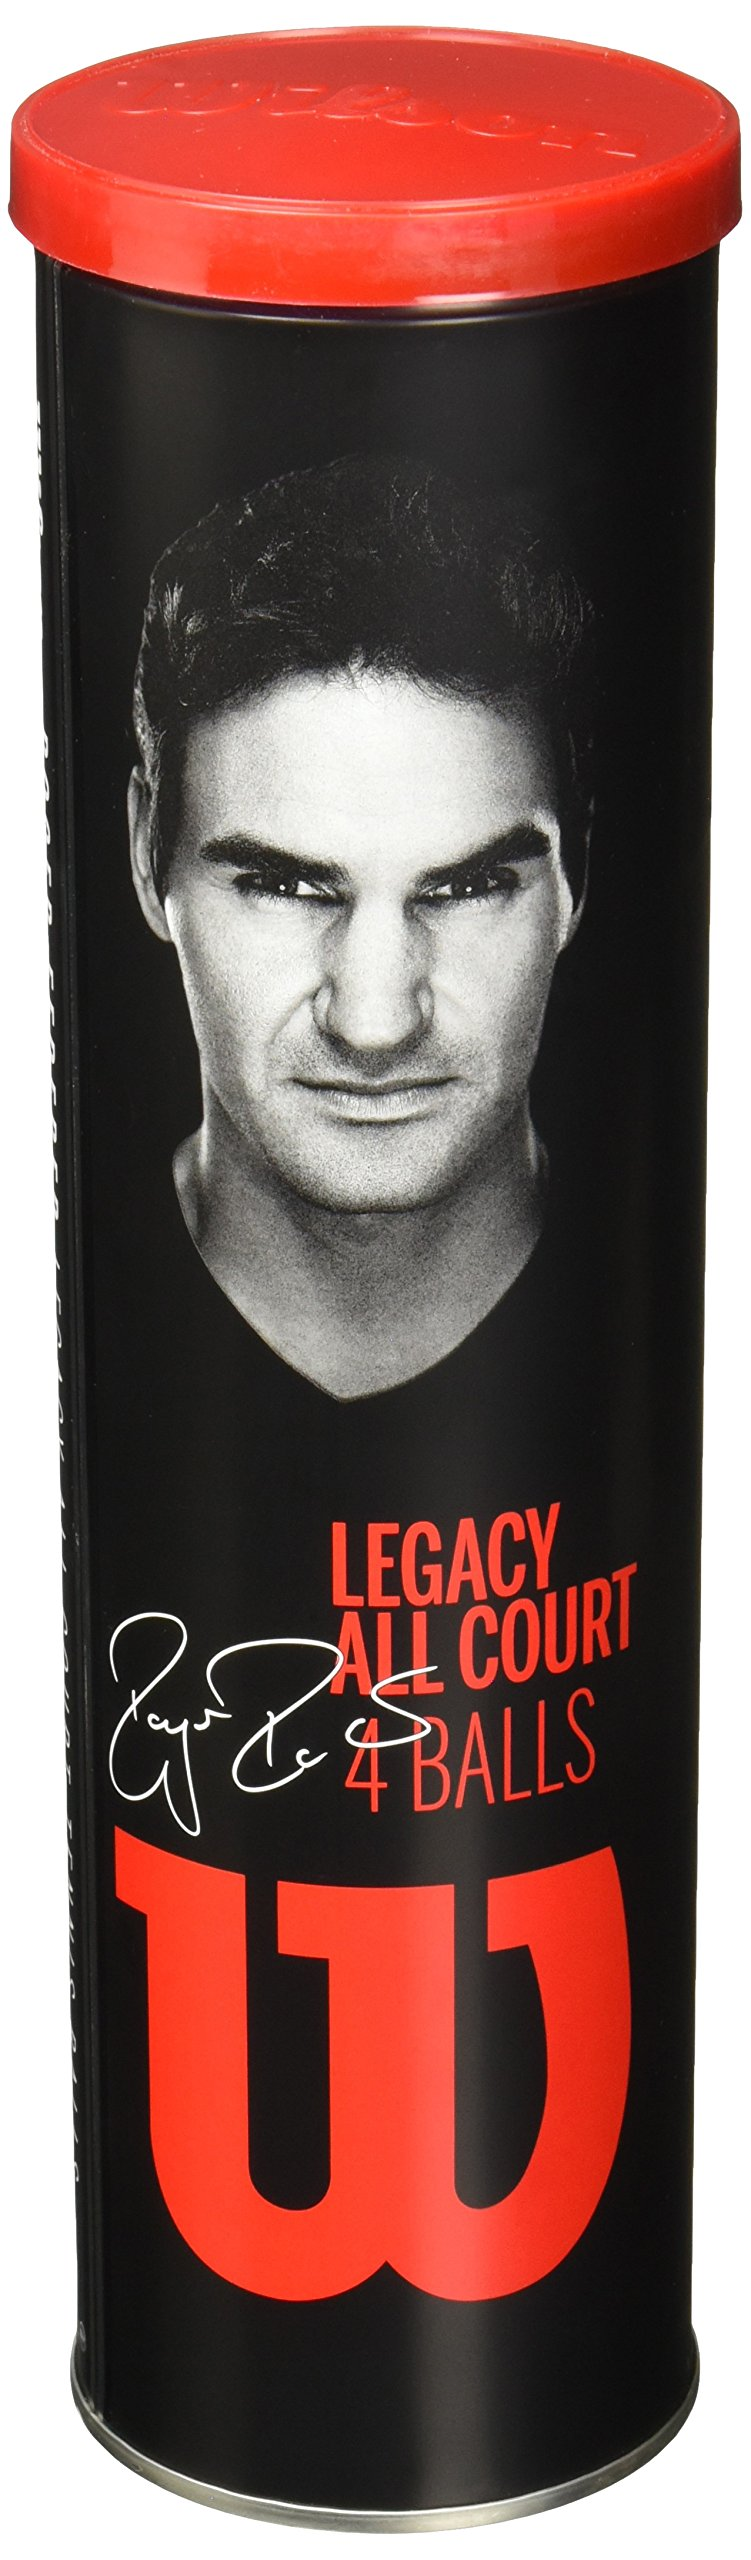 Wilson RF Legacy All Court Tennis Balls (Case) by Wilson